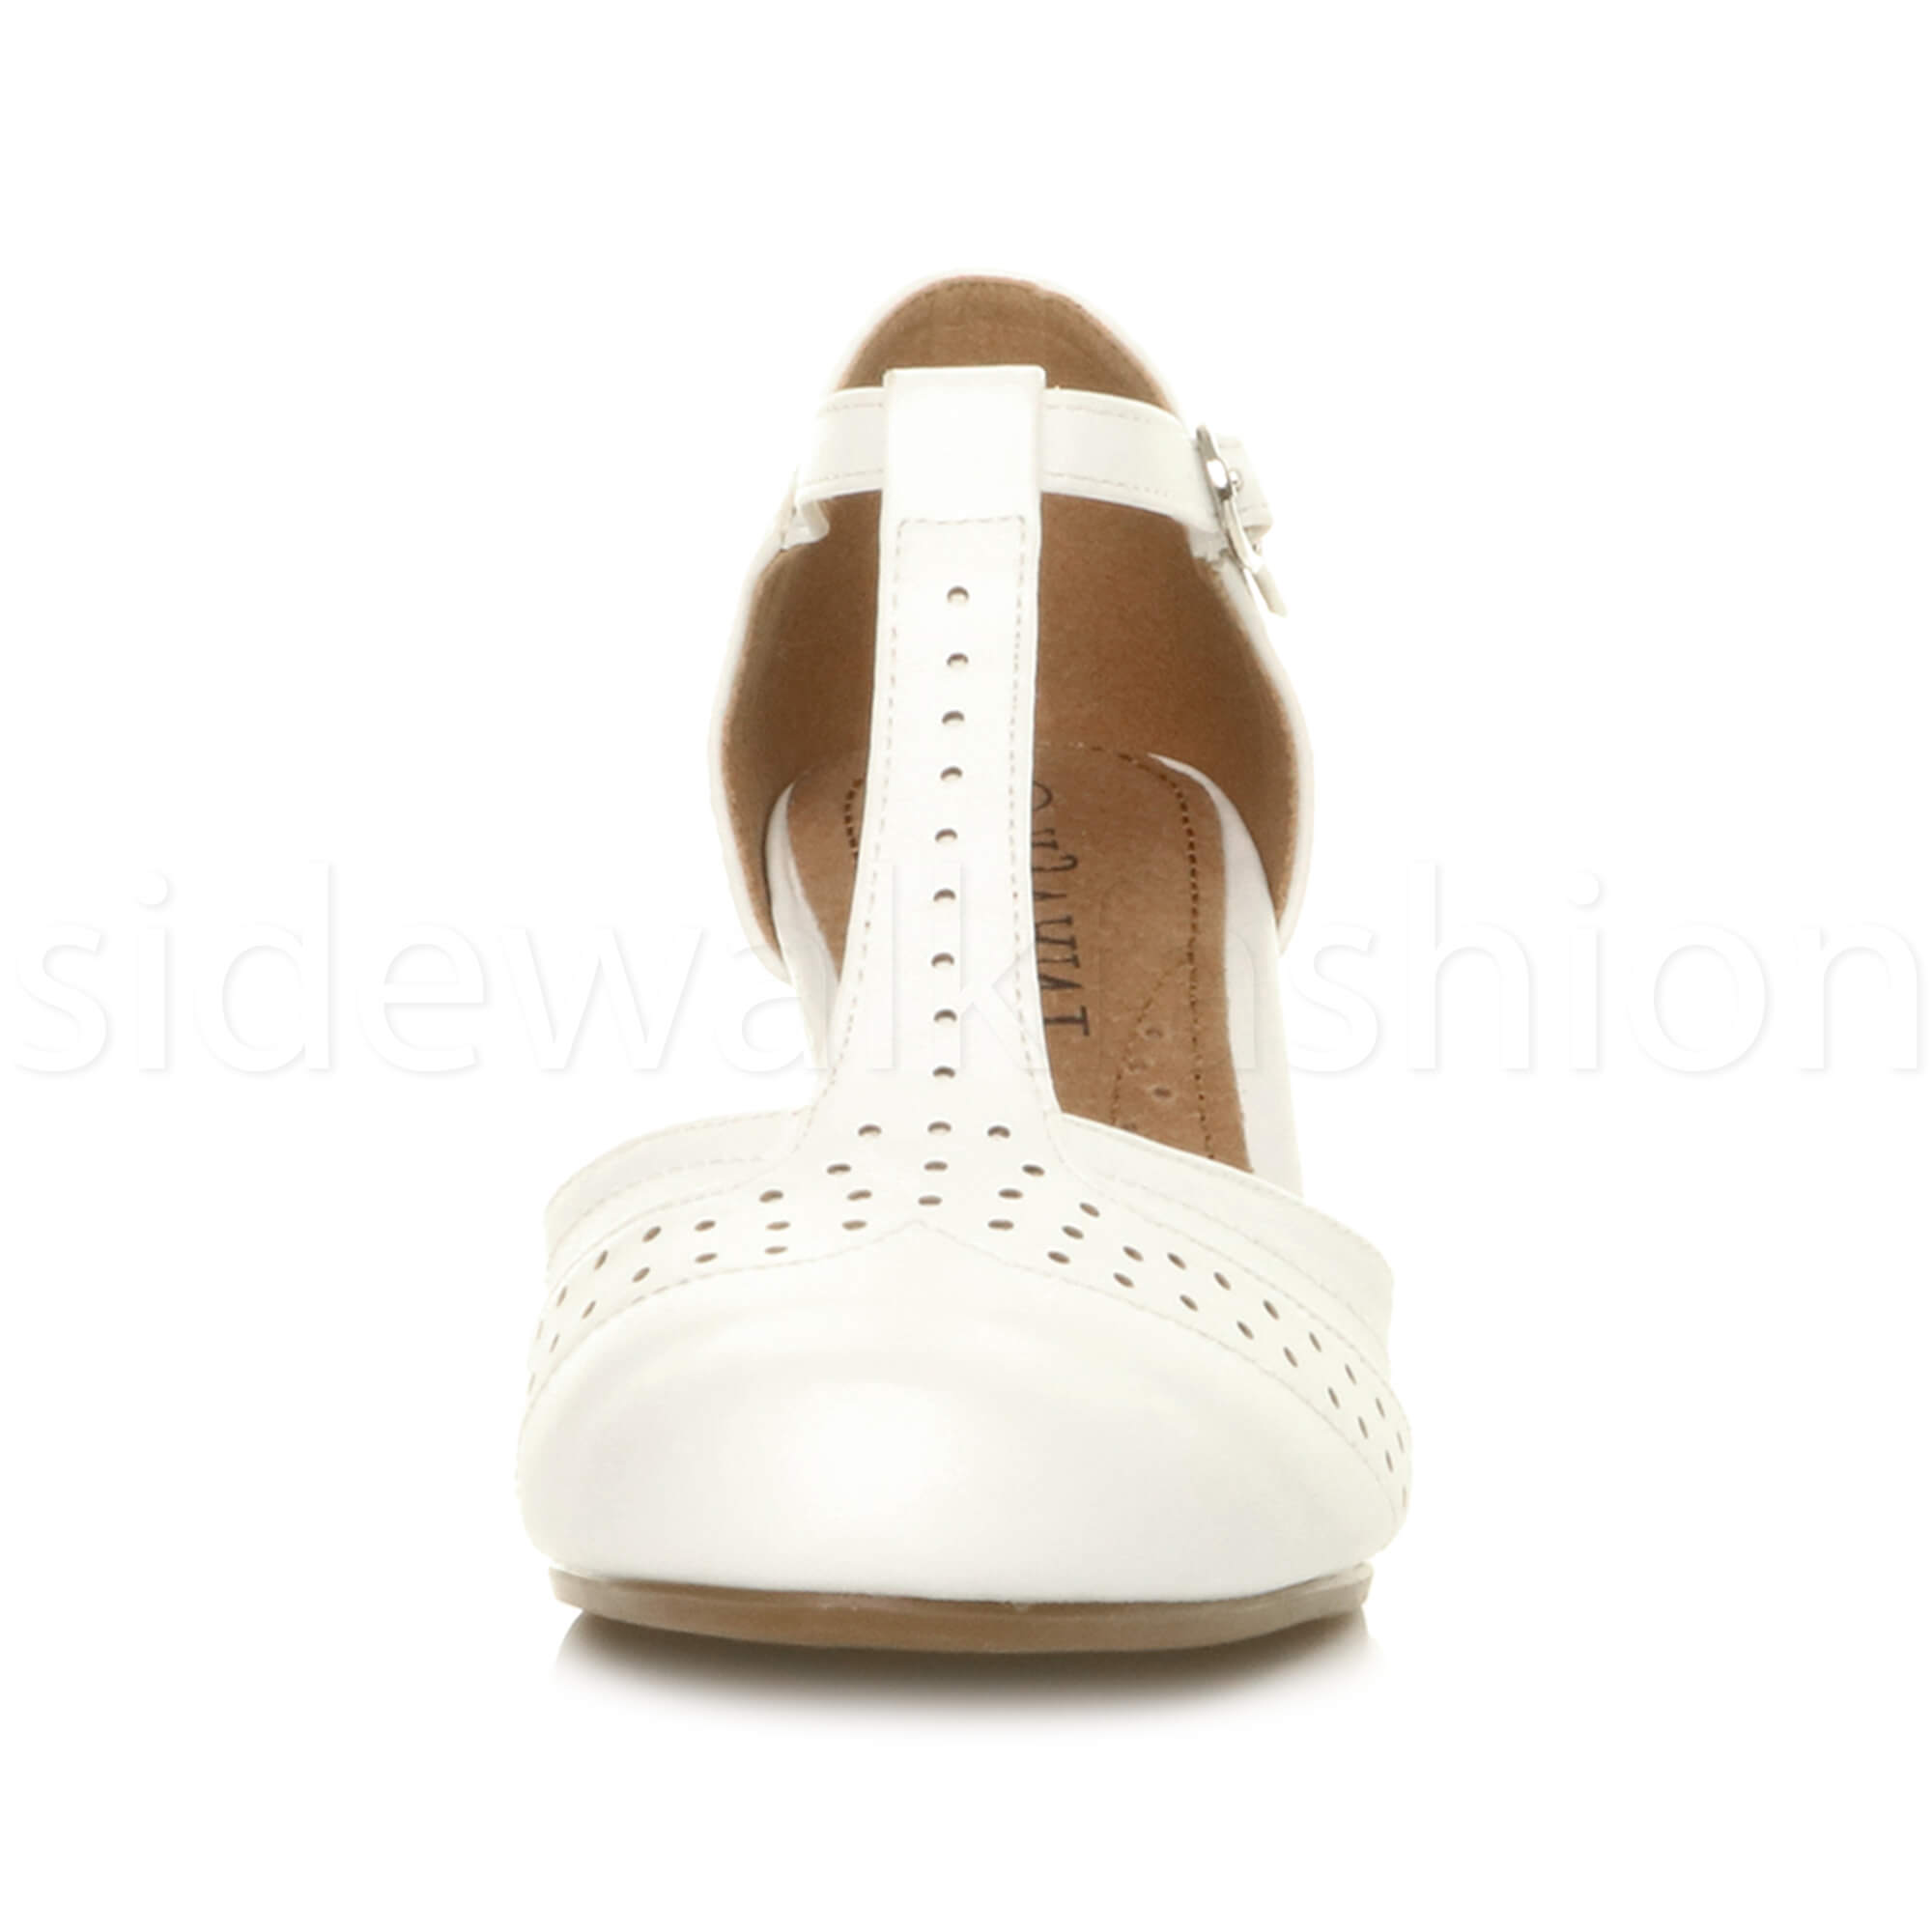 Womens-ladies-block-low-mid-heel-smart-work-Mary-Jane-T-bar-brogue-court-shoes thumbnail 84